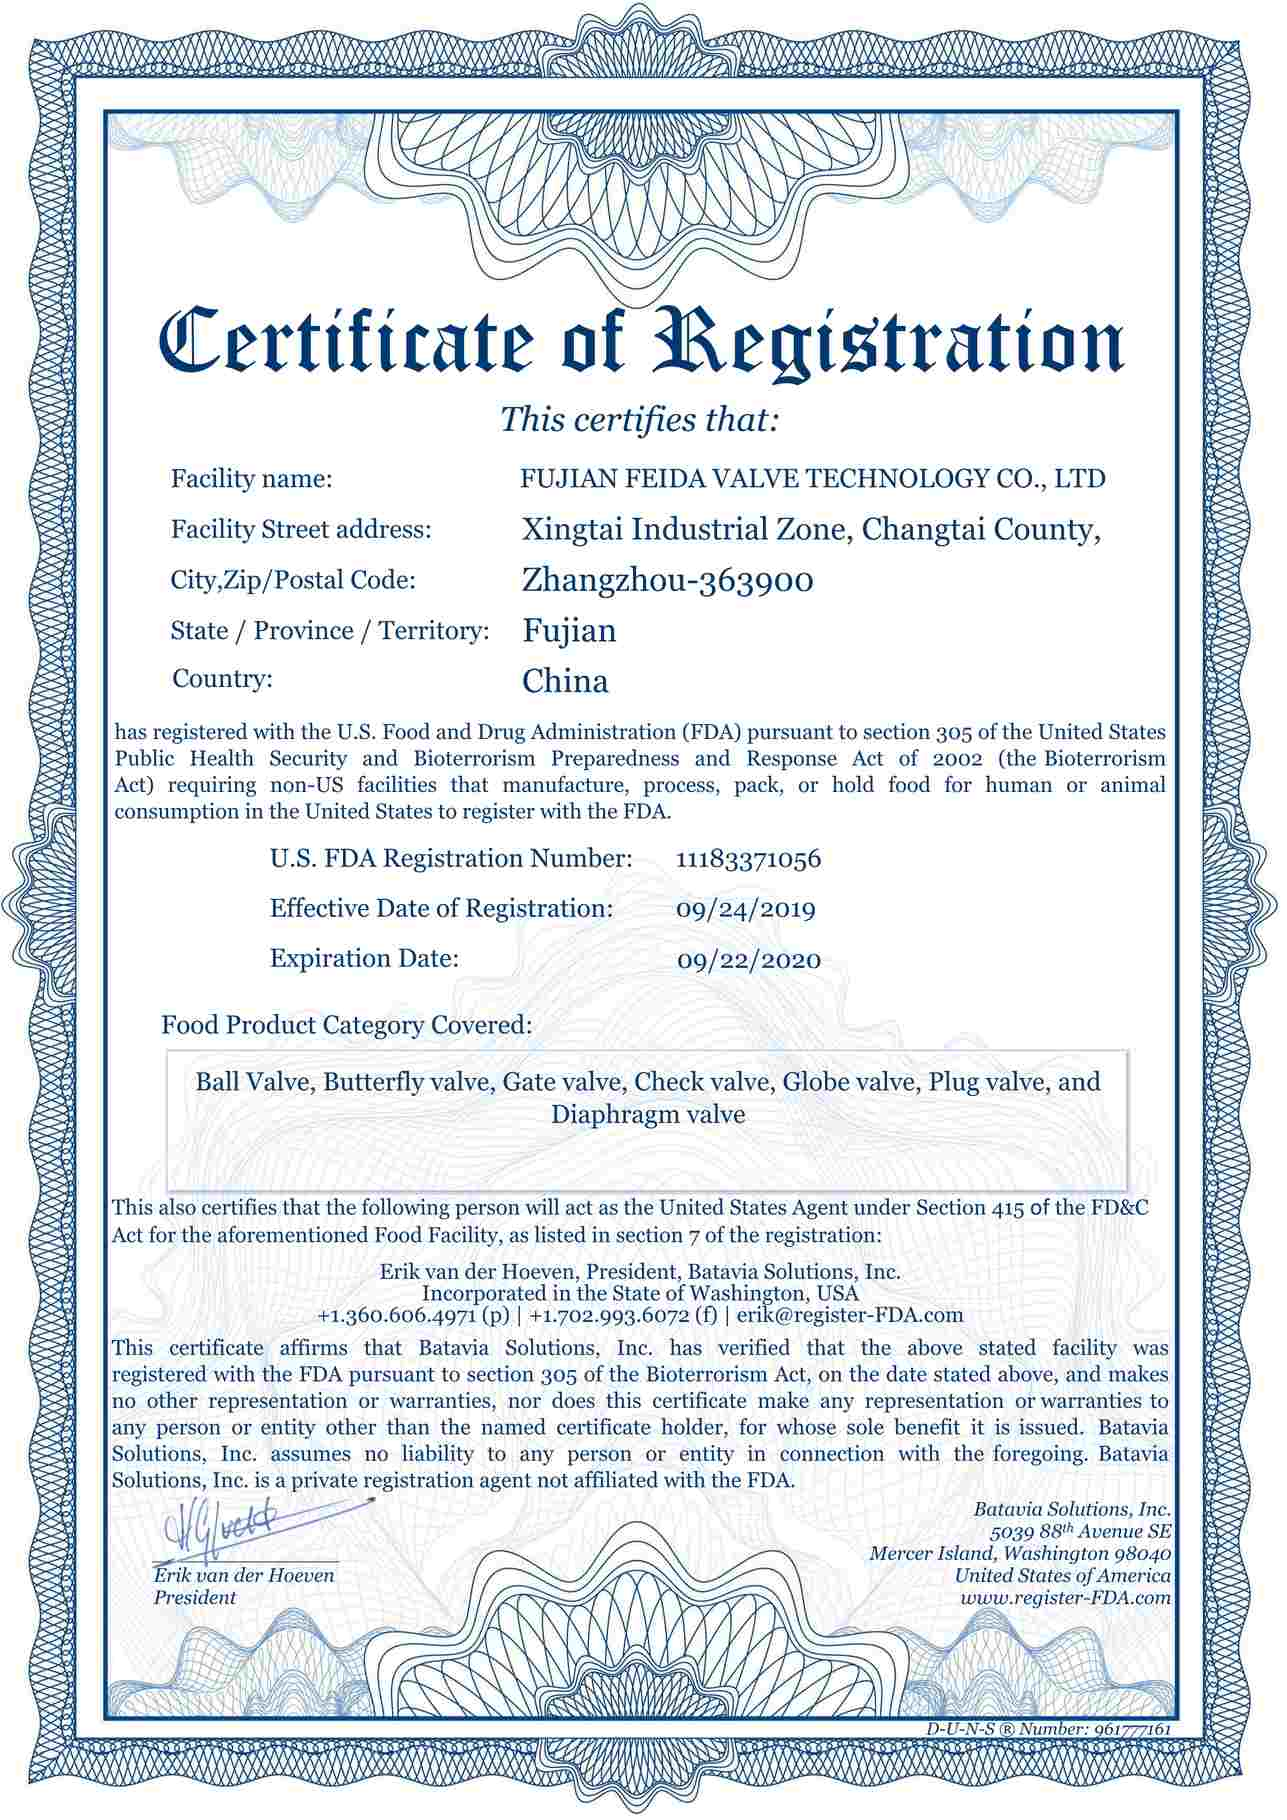 U.S Food and Drug Adminstration(FDA) Certificate